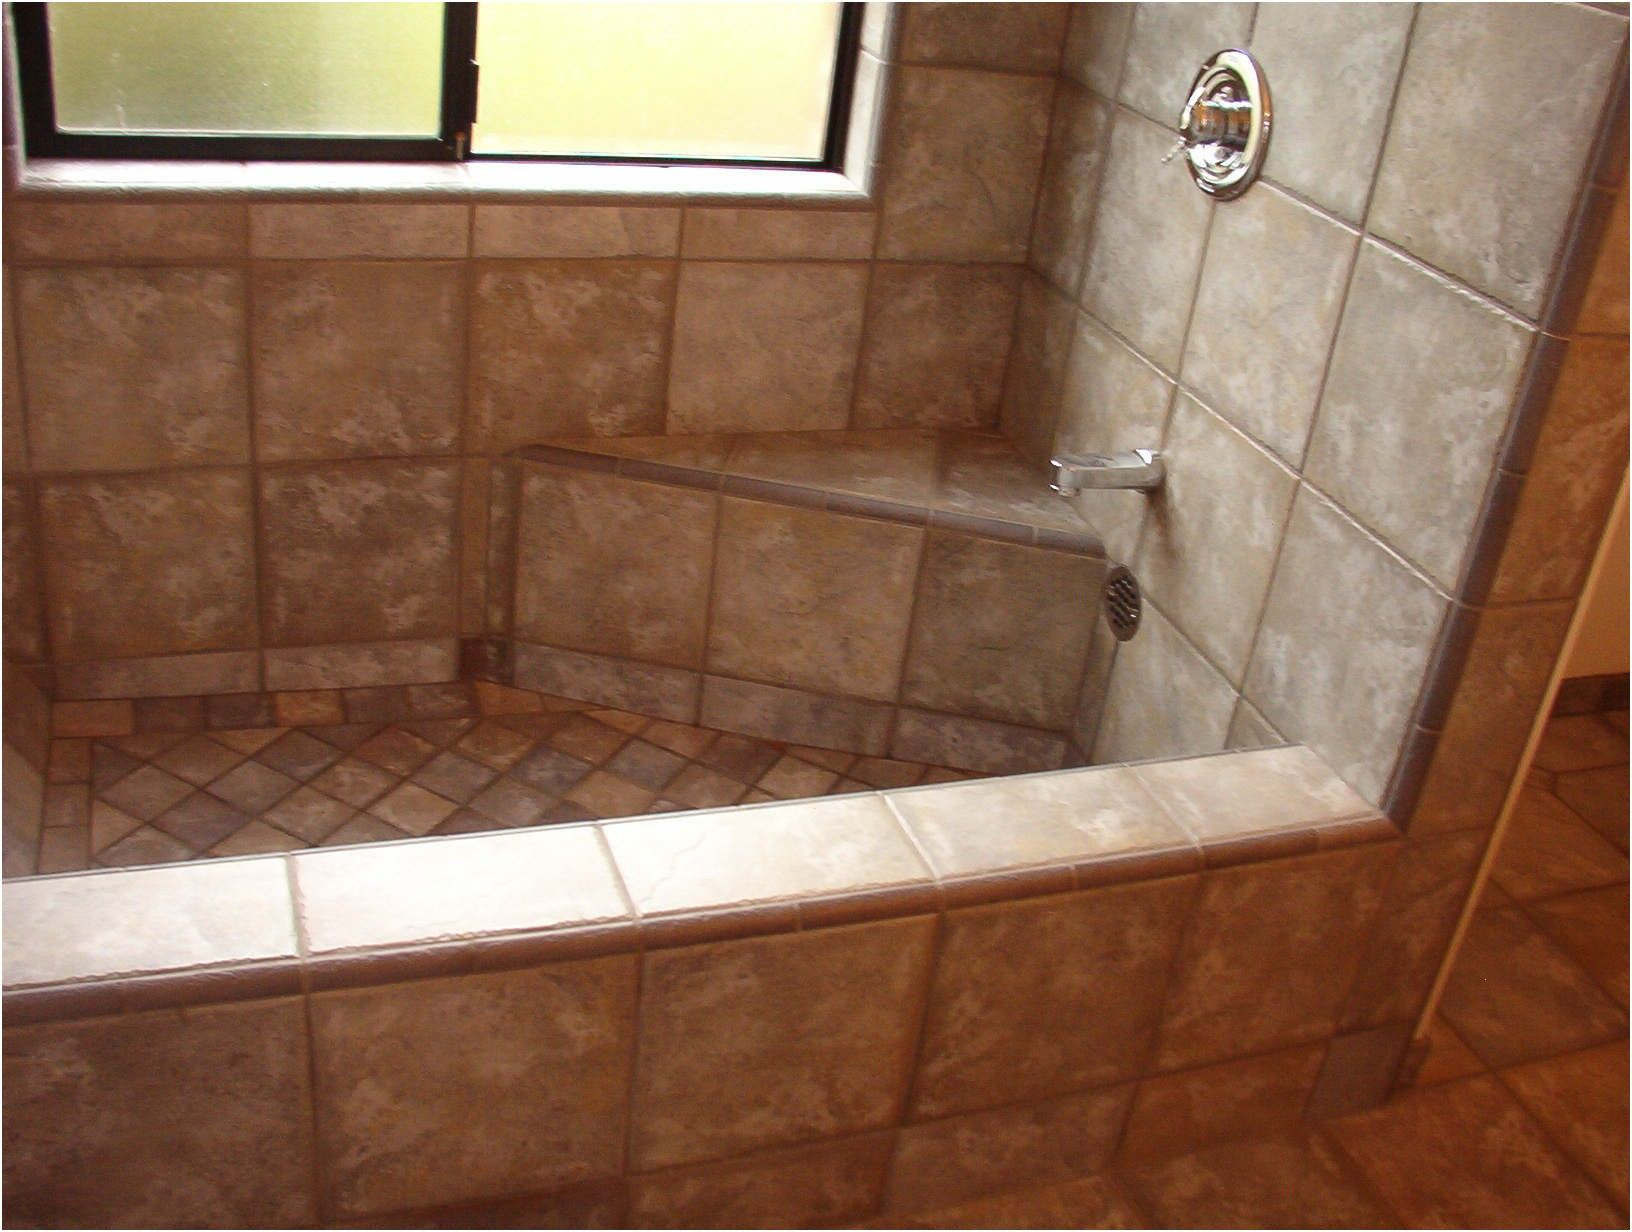 Roman Bathtub Ideas Bathtub Ideas From Roman Bathroom